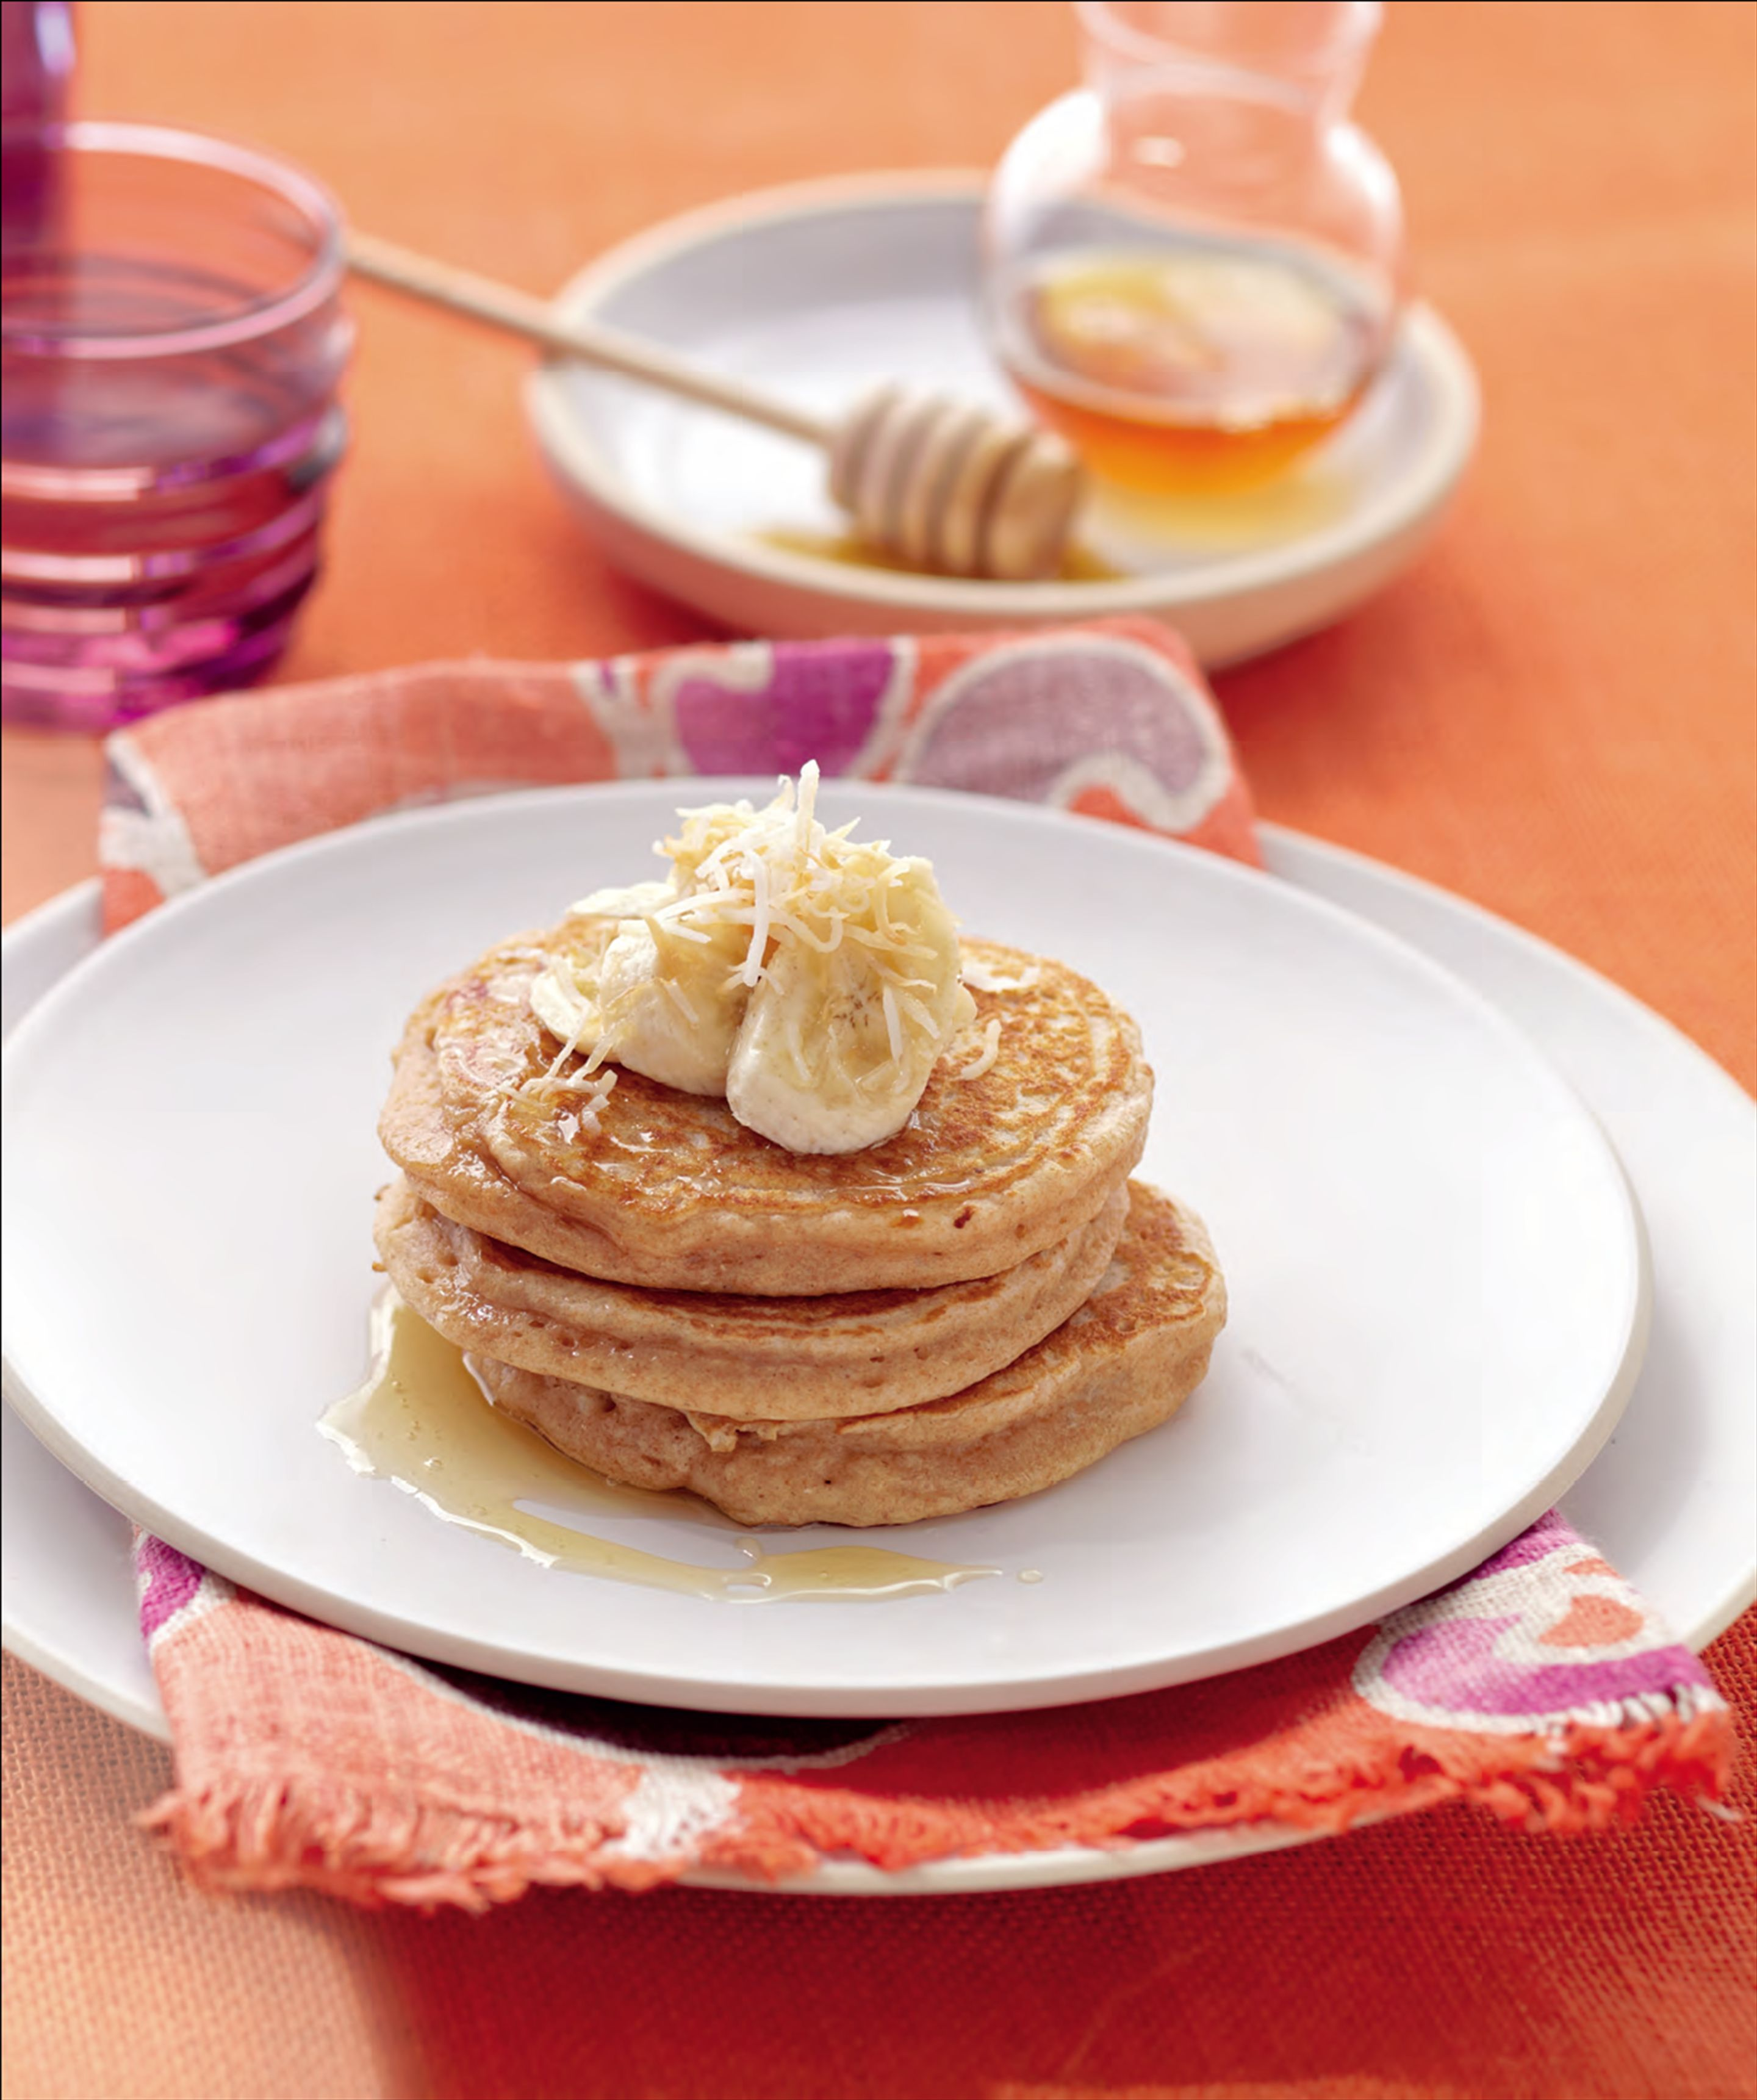 Spelt pancakes with ricotta, honey and toasted coconut